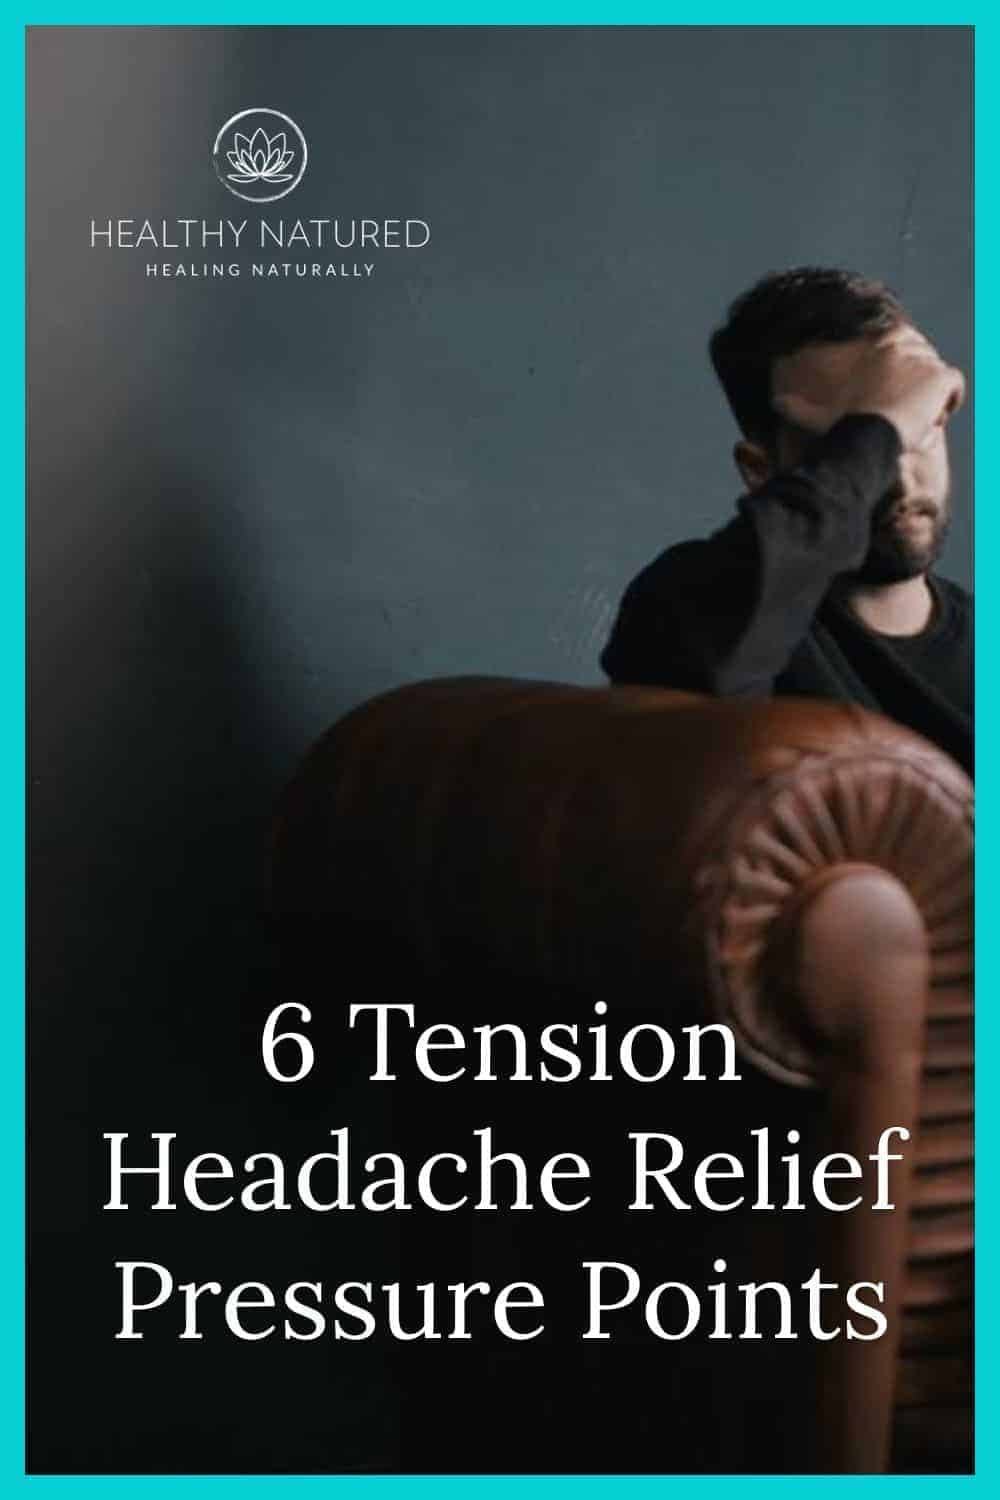 6 Tension Headache Relief Pressure Points That Are Best For You!